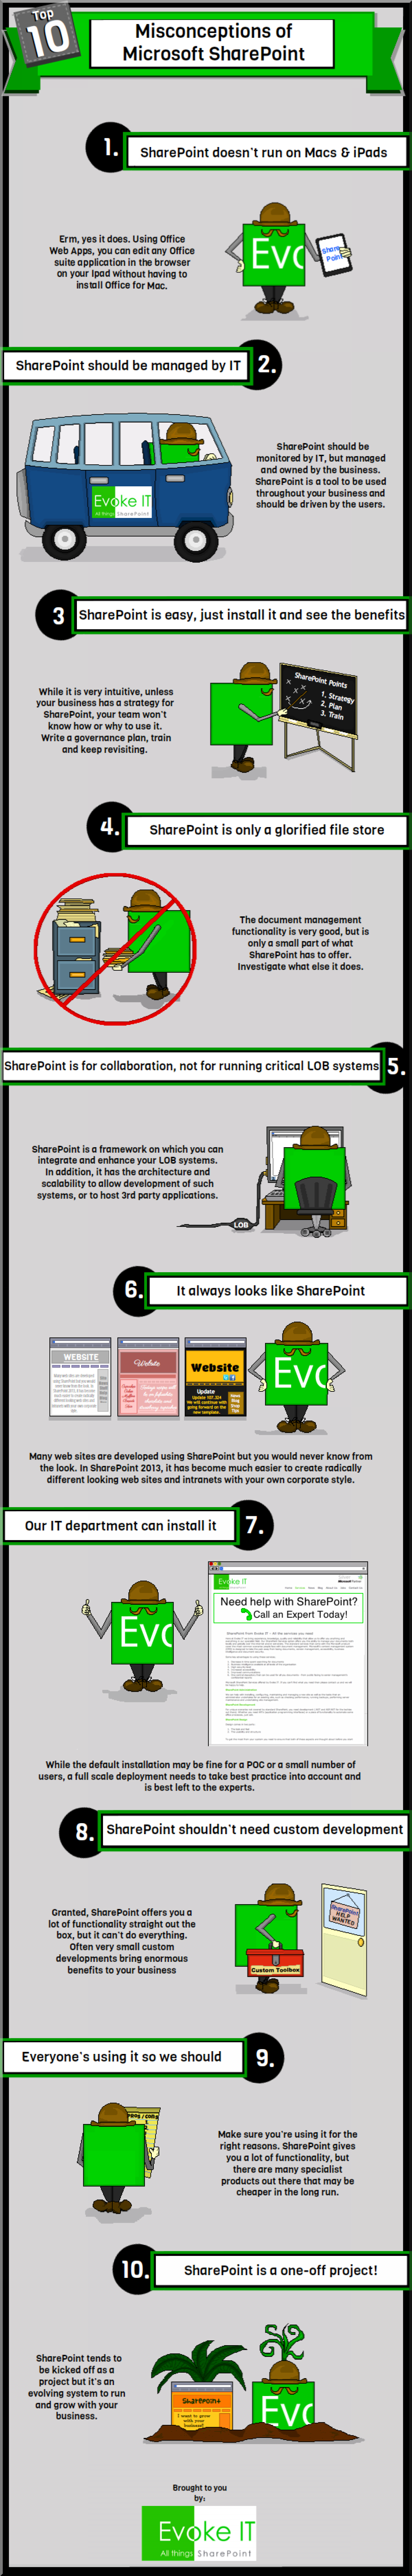 10 Misconceptions of Microsoft Sharepoint Infographic